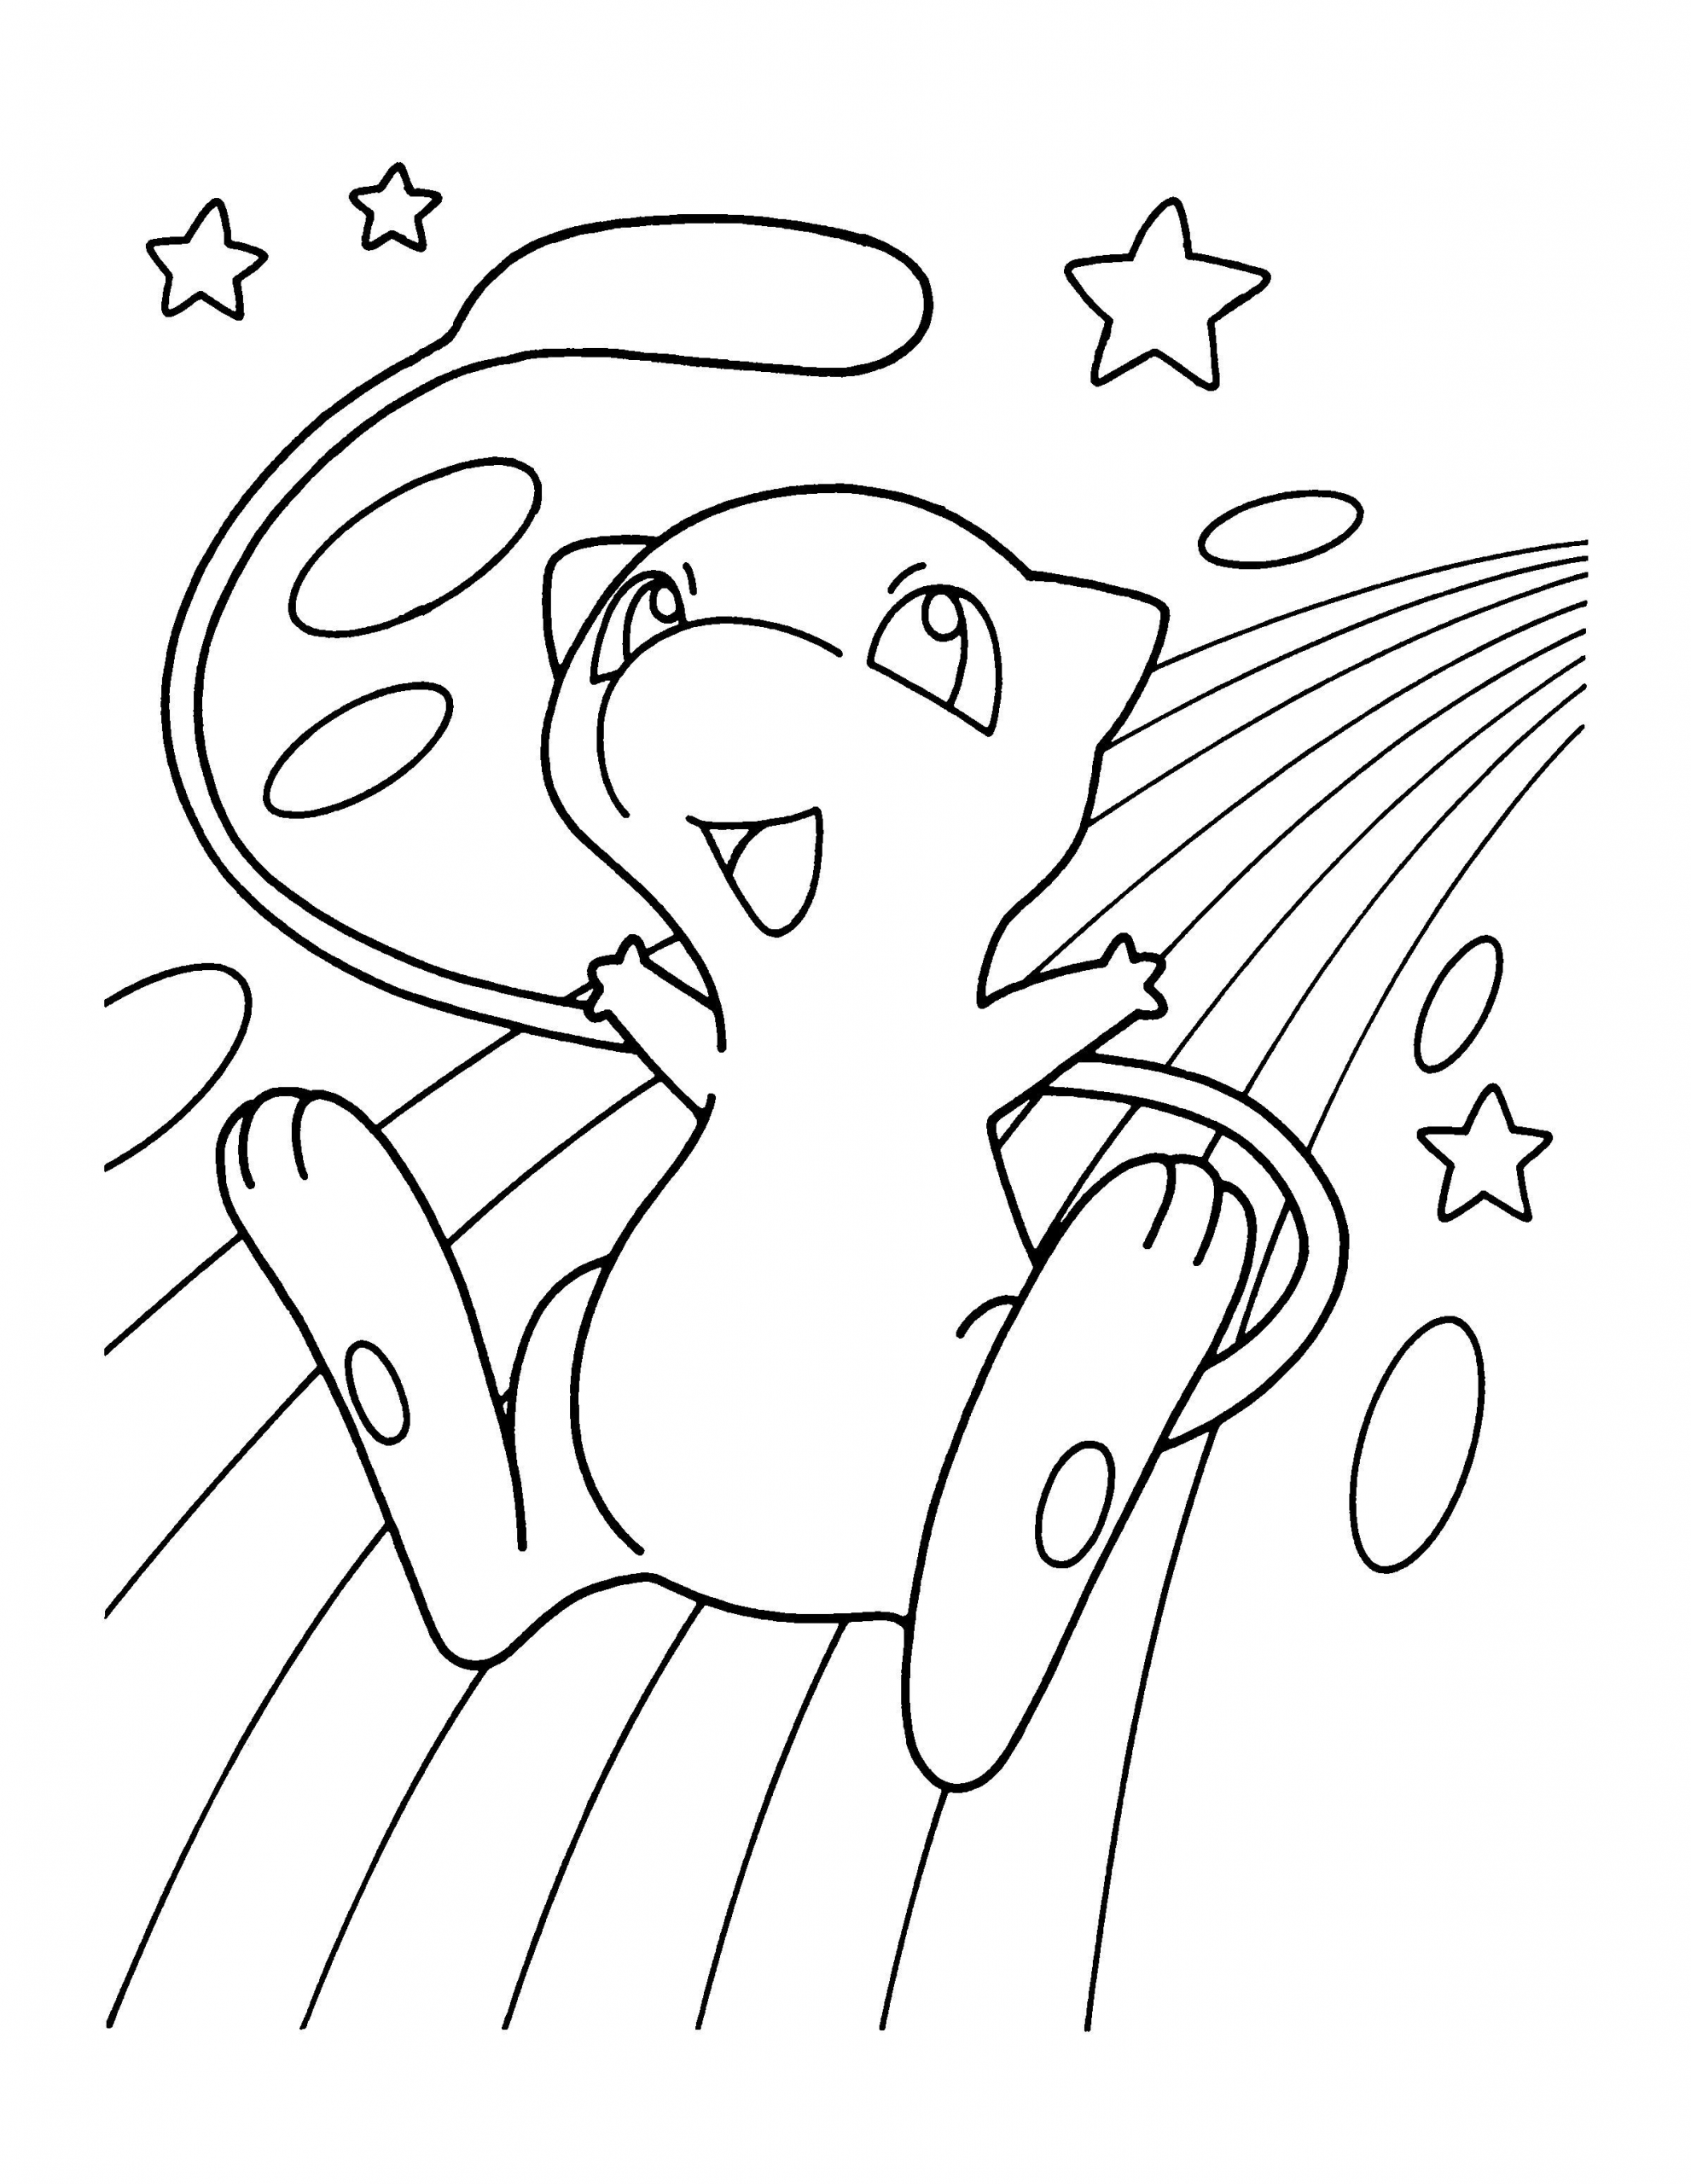 Mew Pokemon Coloring Page Youngandtae Com In 2020 Pokemon Coloring Pages Pokemon Coloring Cartoon Coloring Pages